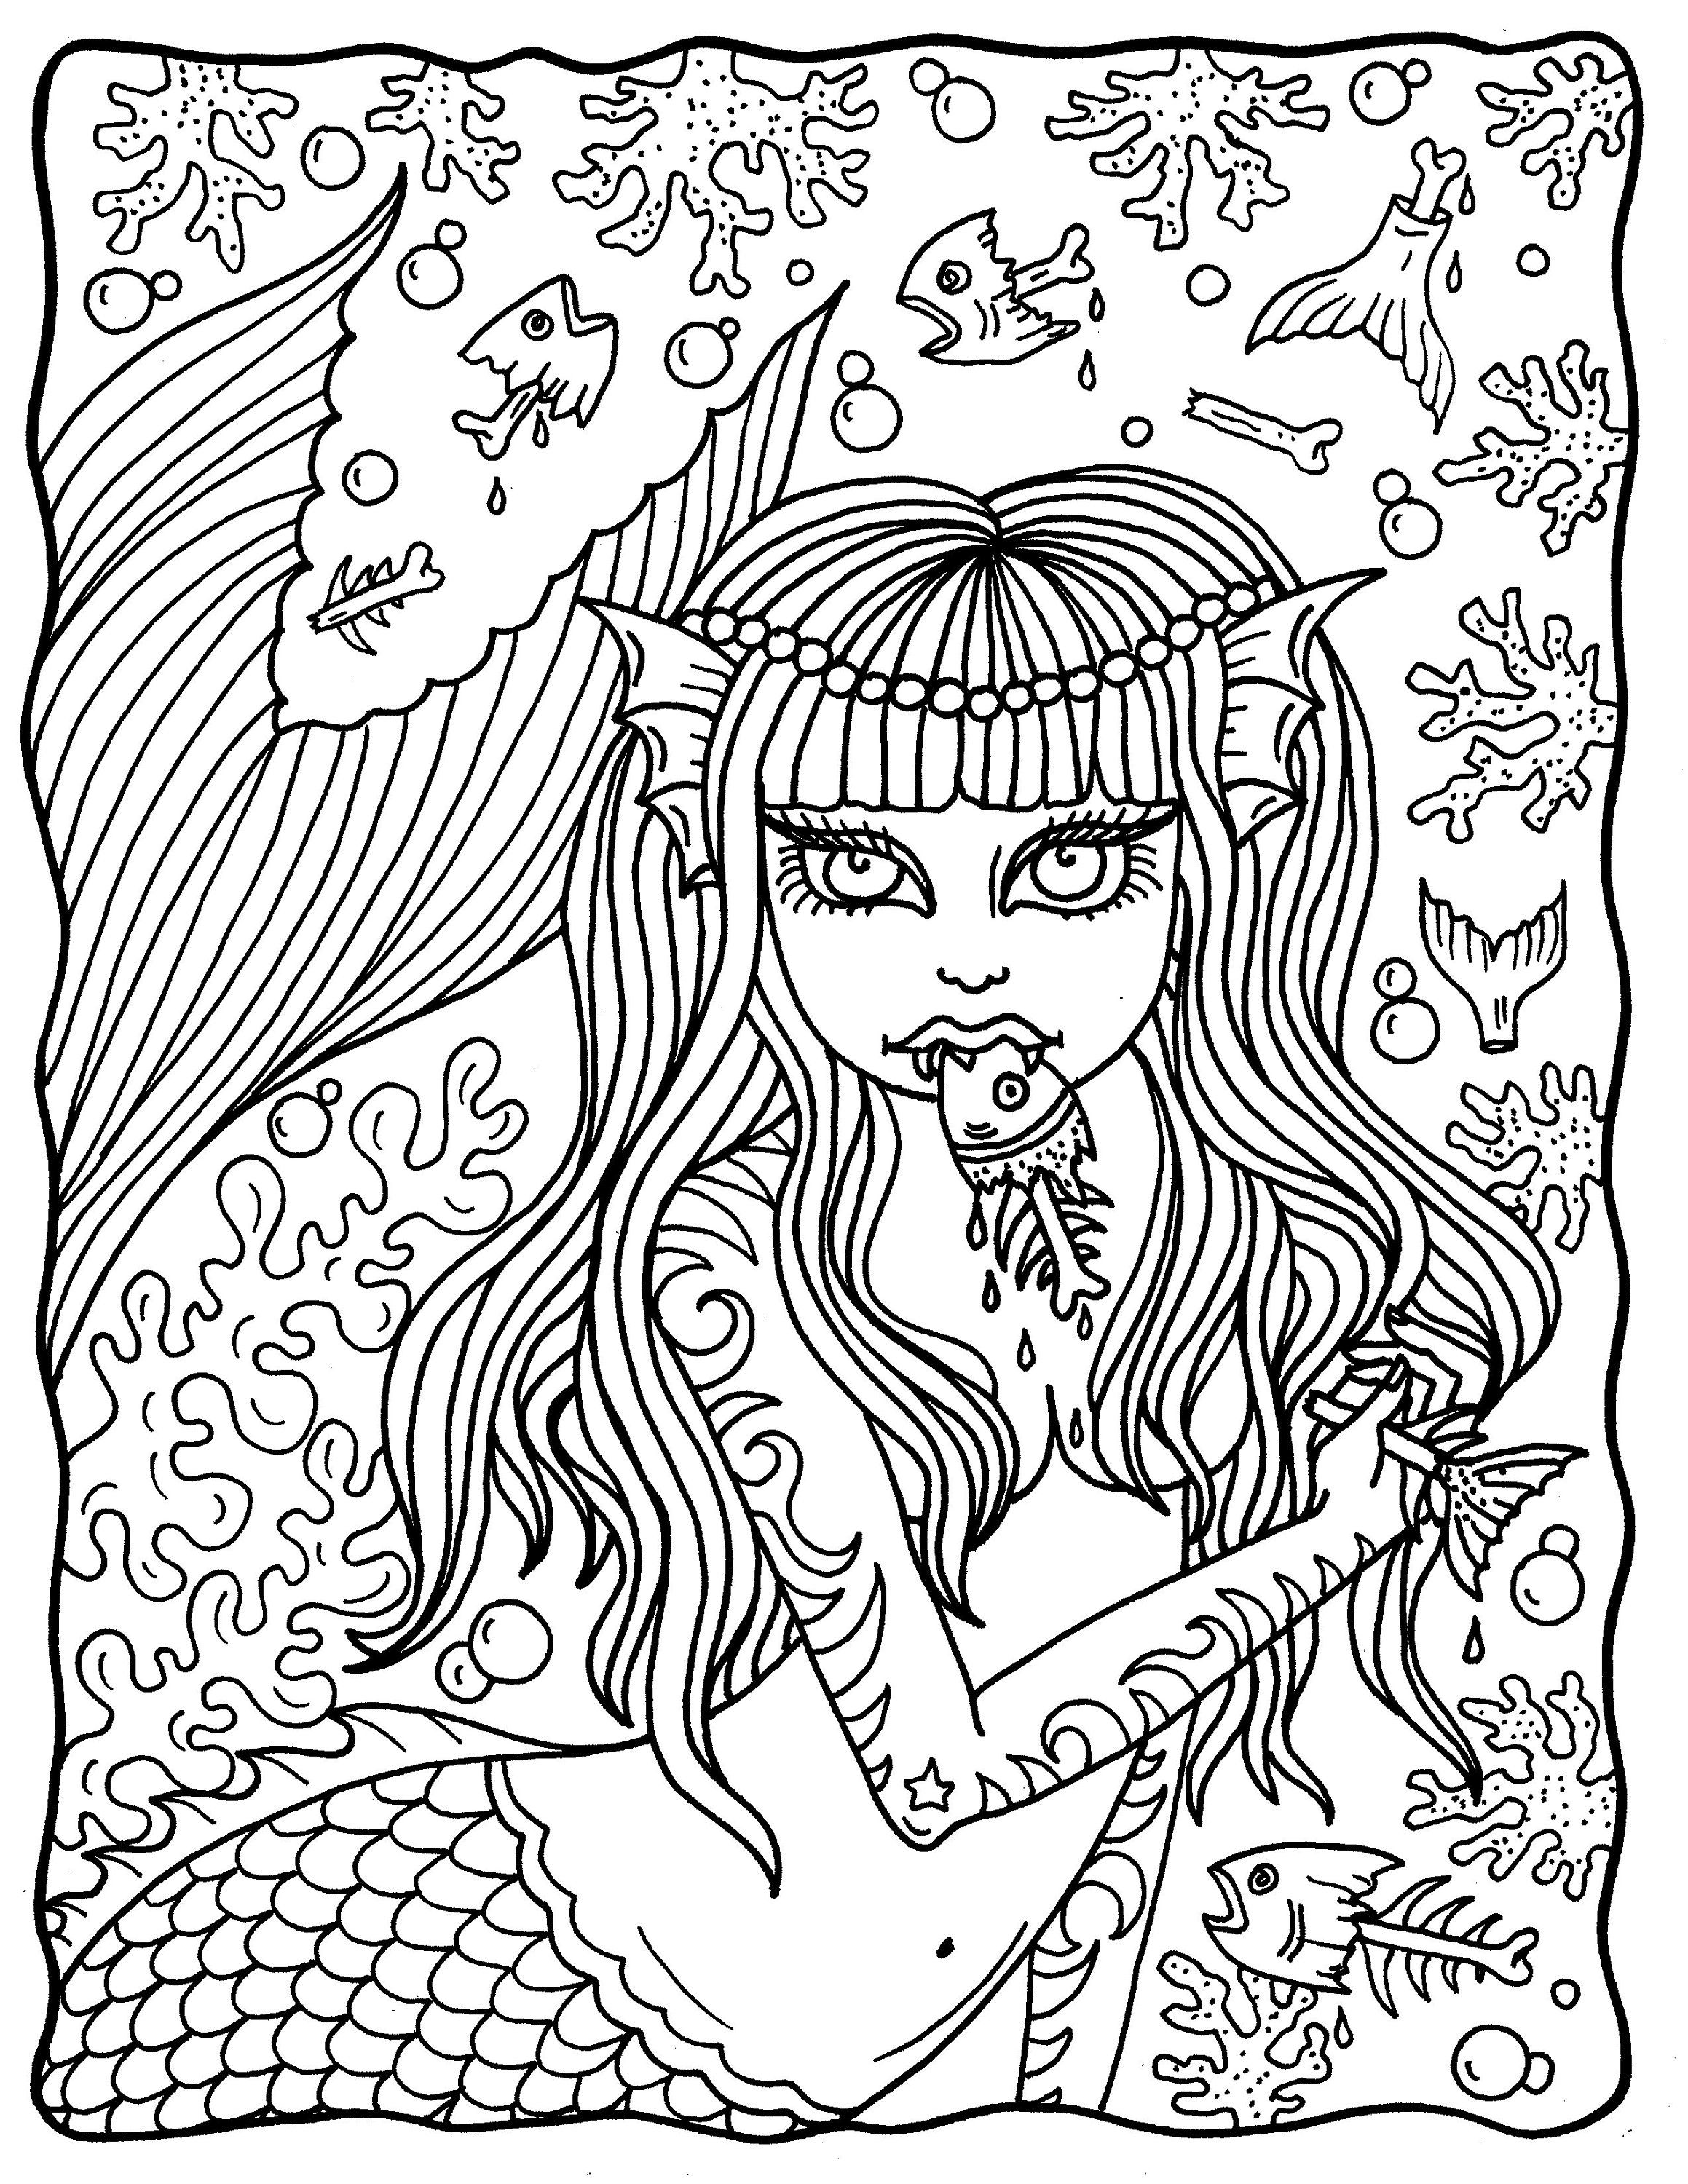 Printable Pictures Of Mermaids To Be Colored Welcome To One Of The Largest Collection Of Colouri Mermaid Coloring Pages Mermaid Coloring Horse Coloring Pages